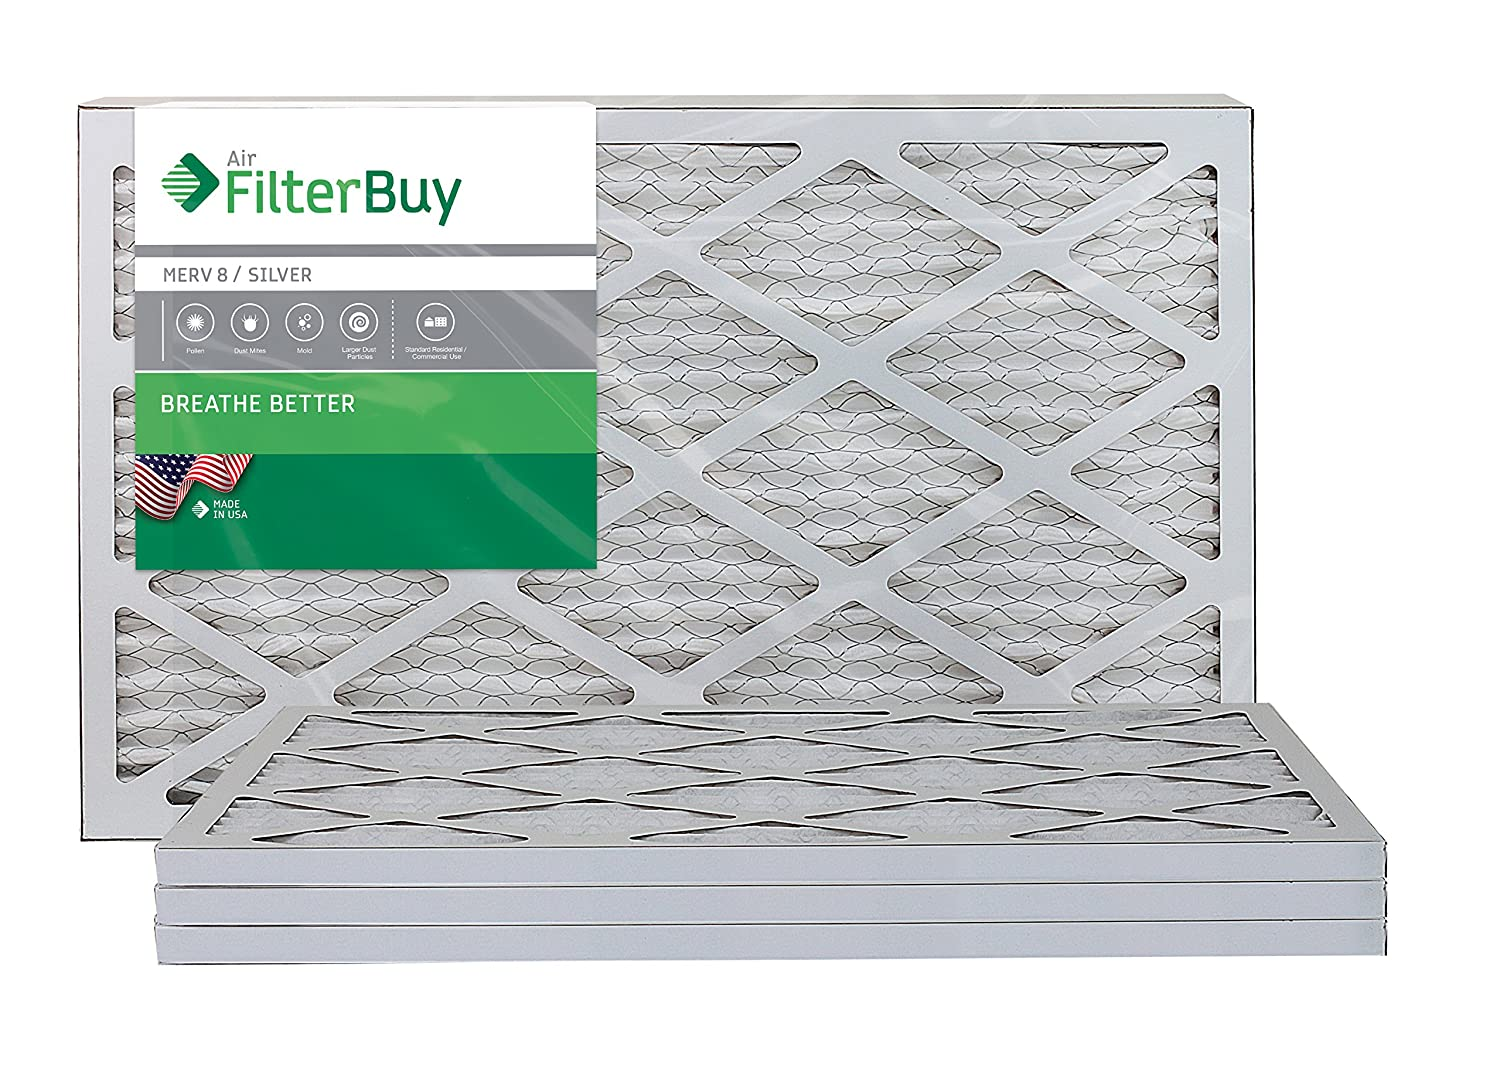 FilterBuy AFB MERV 8 16x20x1 Pleated AC Furnace Air Filter,